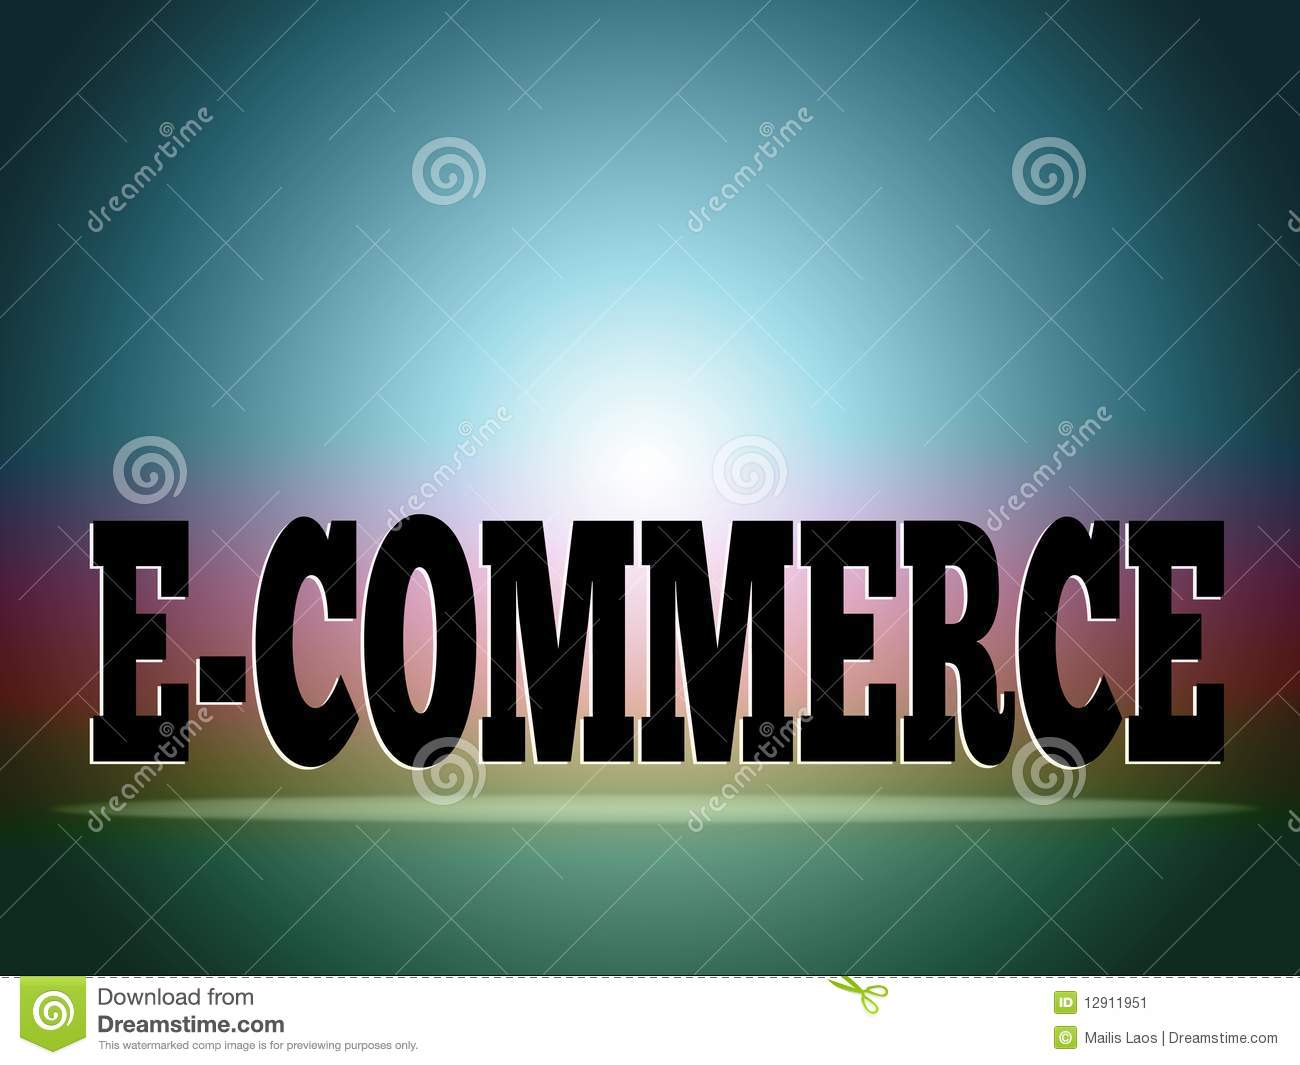 E commerce background images - Background Colored Commerce E